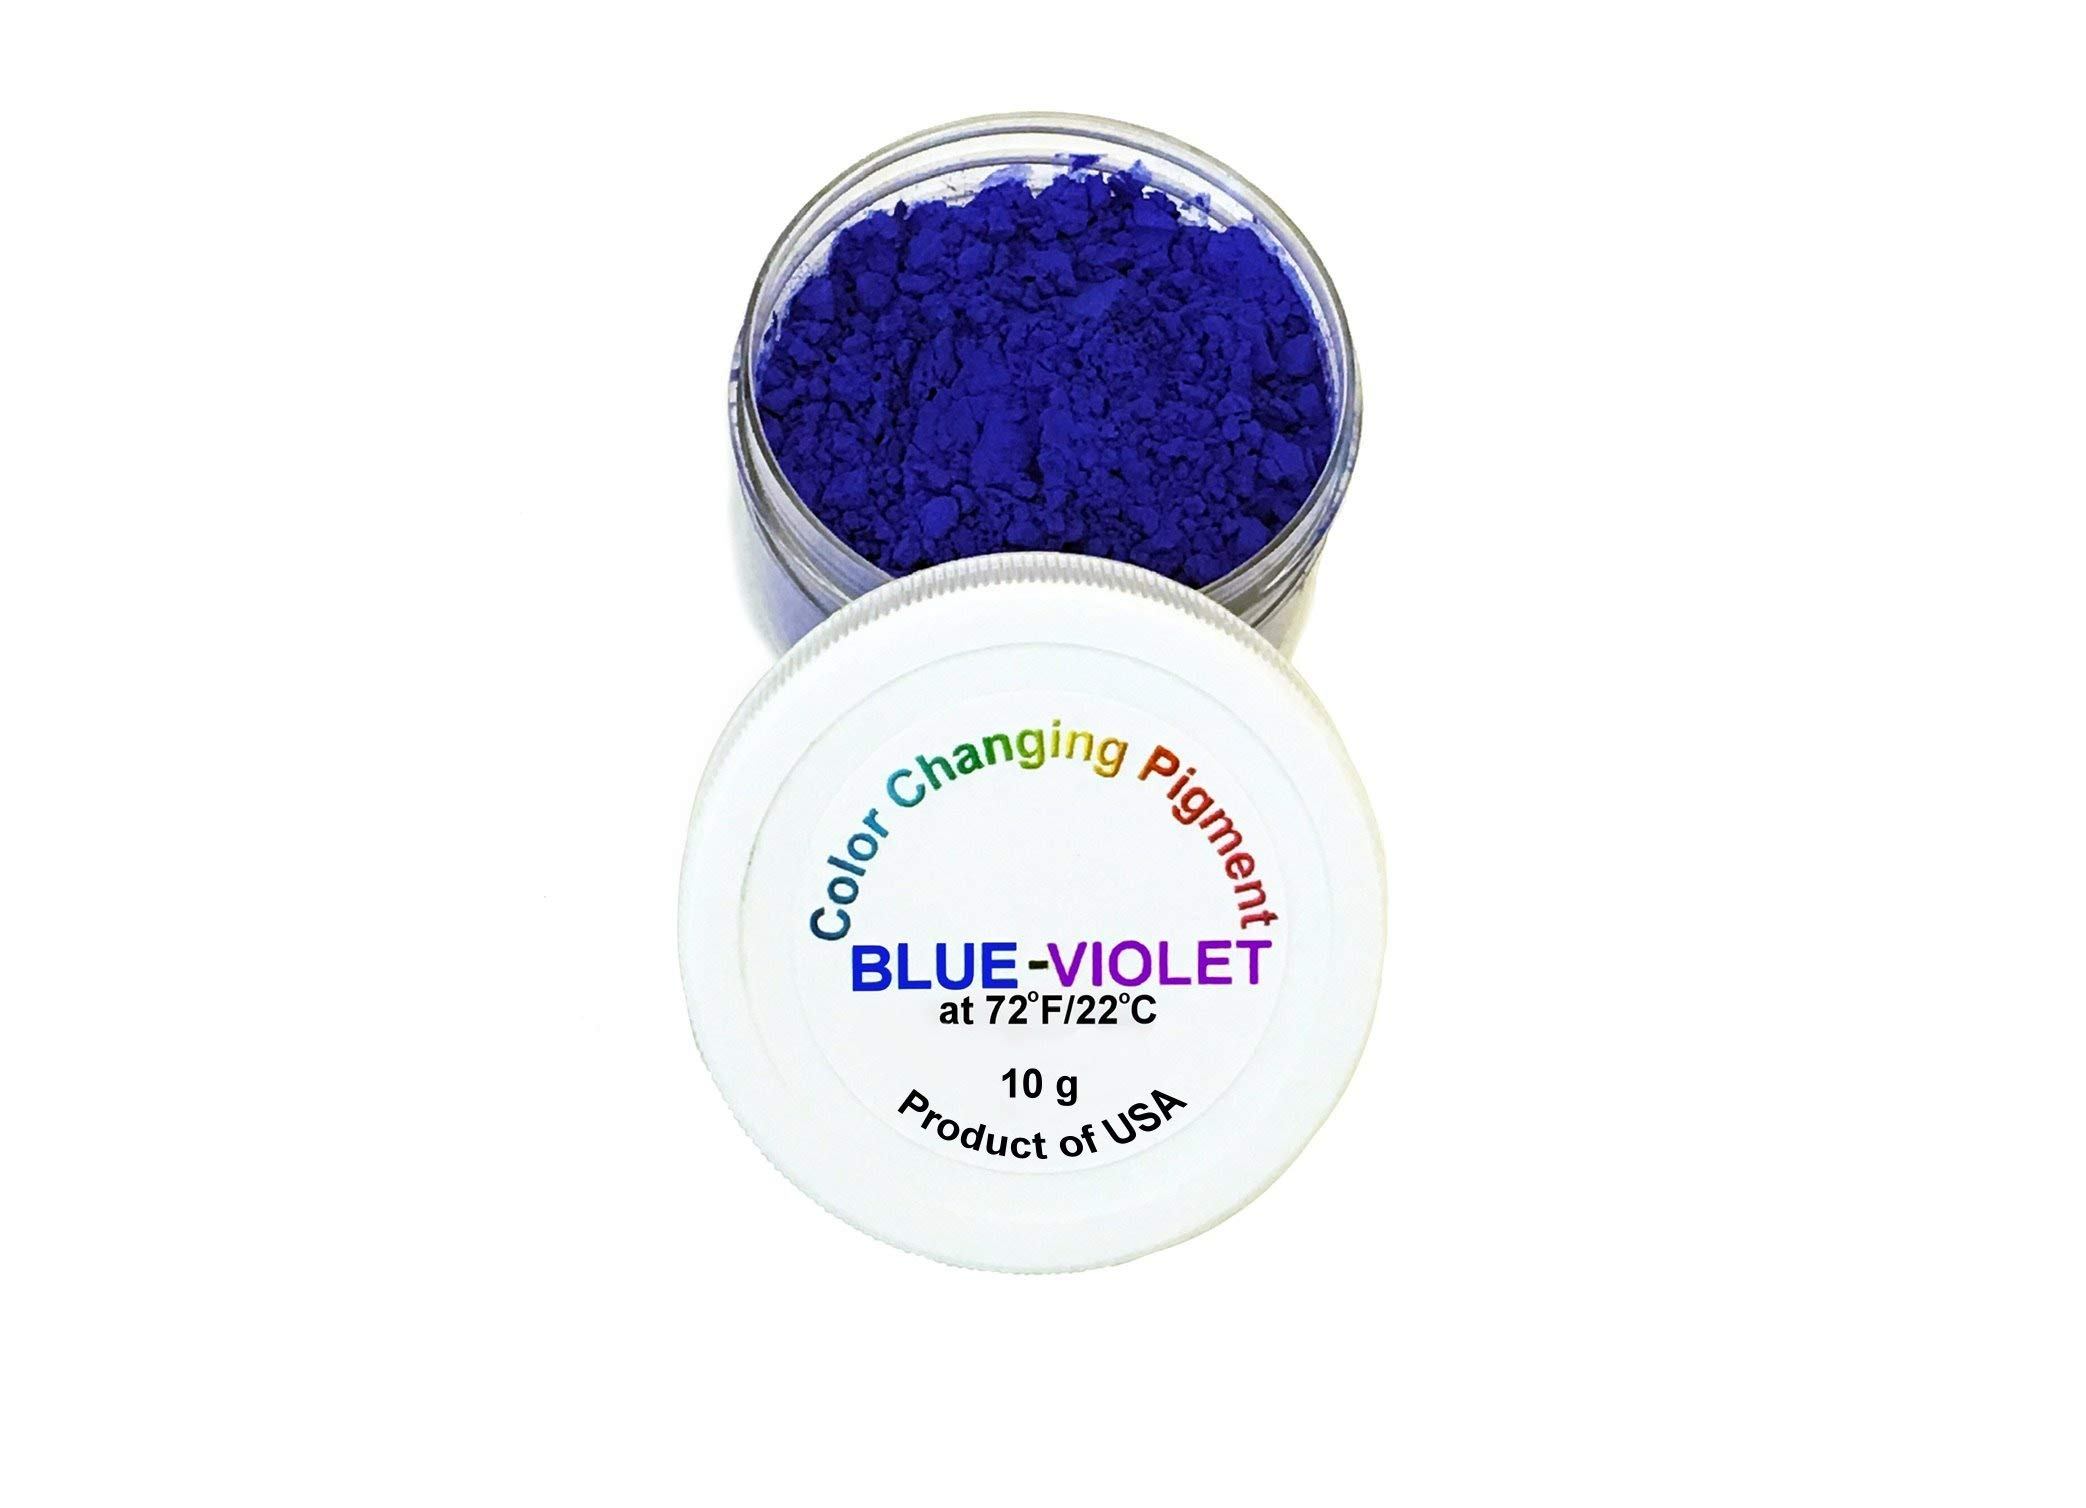 Temperature Activated Thermochromic Powder Pigment Blue Changing to Violet at 72F/22C Perfect for Color Changing Slime Goo Play Doh